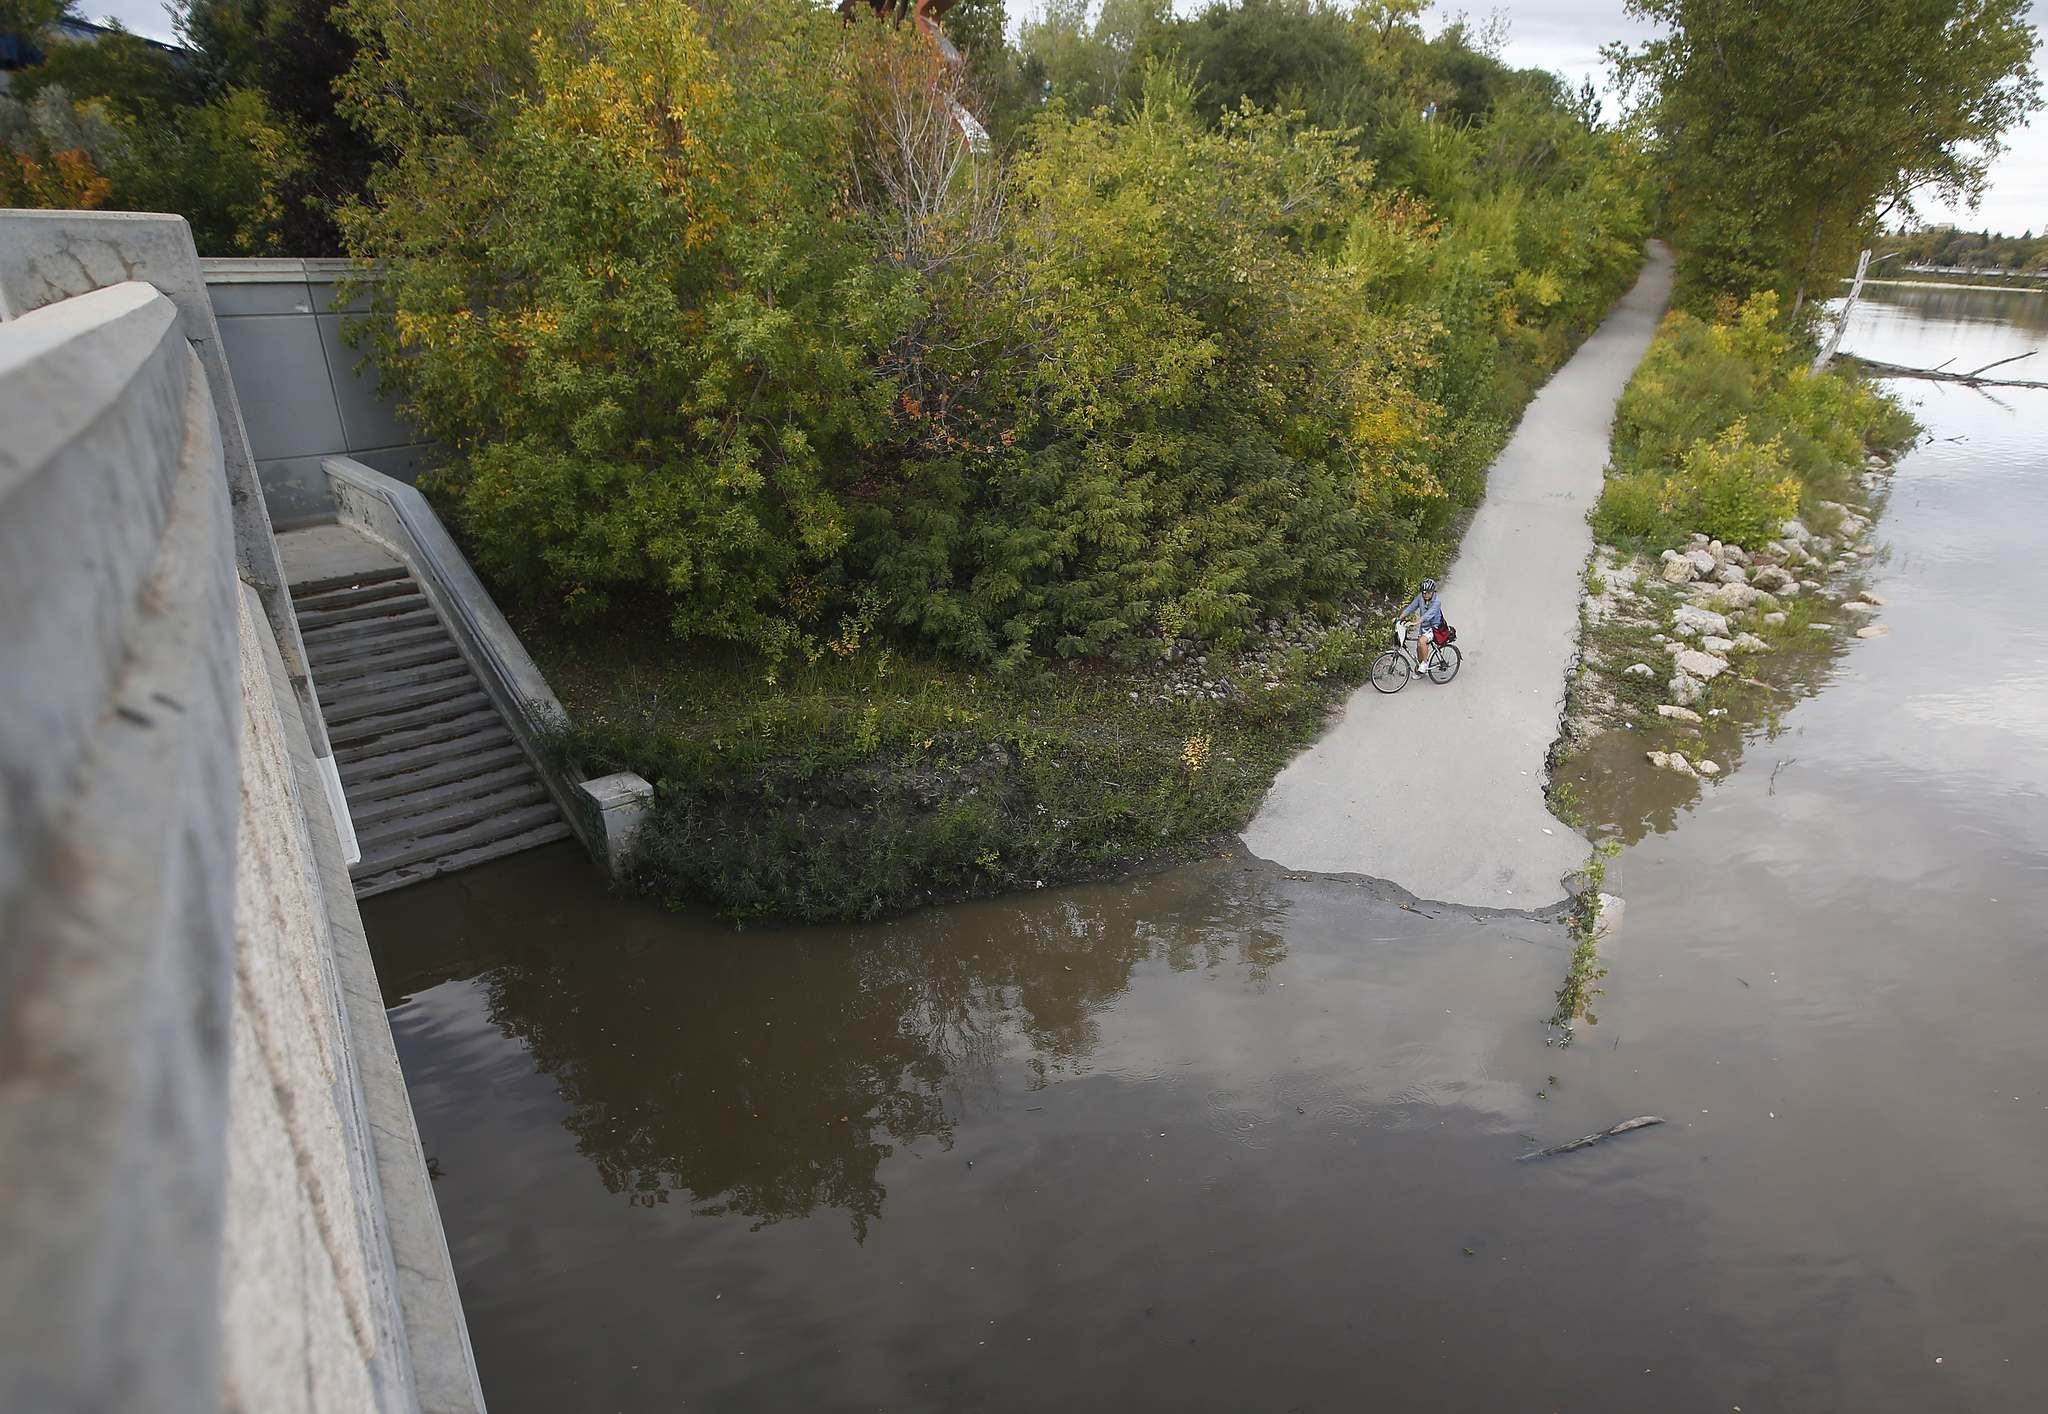 Winnipeg had 153.1 millimetres of rain in September, including 40 mm during a single rainfall on Sept. 20, which flooded various walkways connected to The Forks riverwalk system. (John Woods / Winnipeg Free Press files)</p>